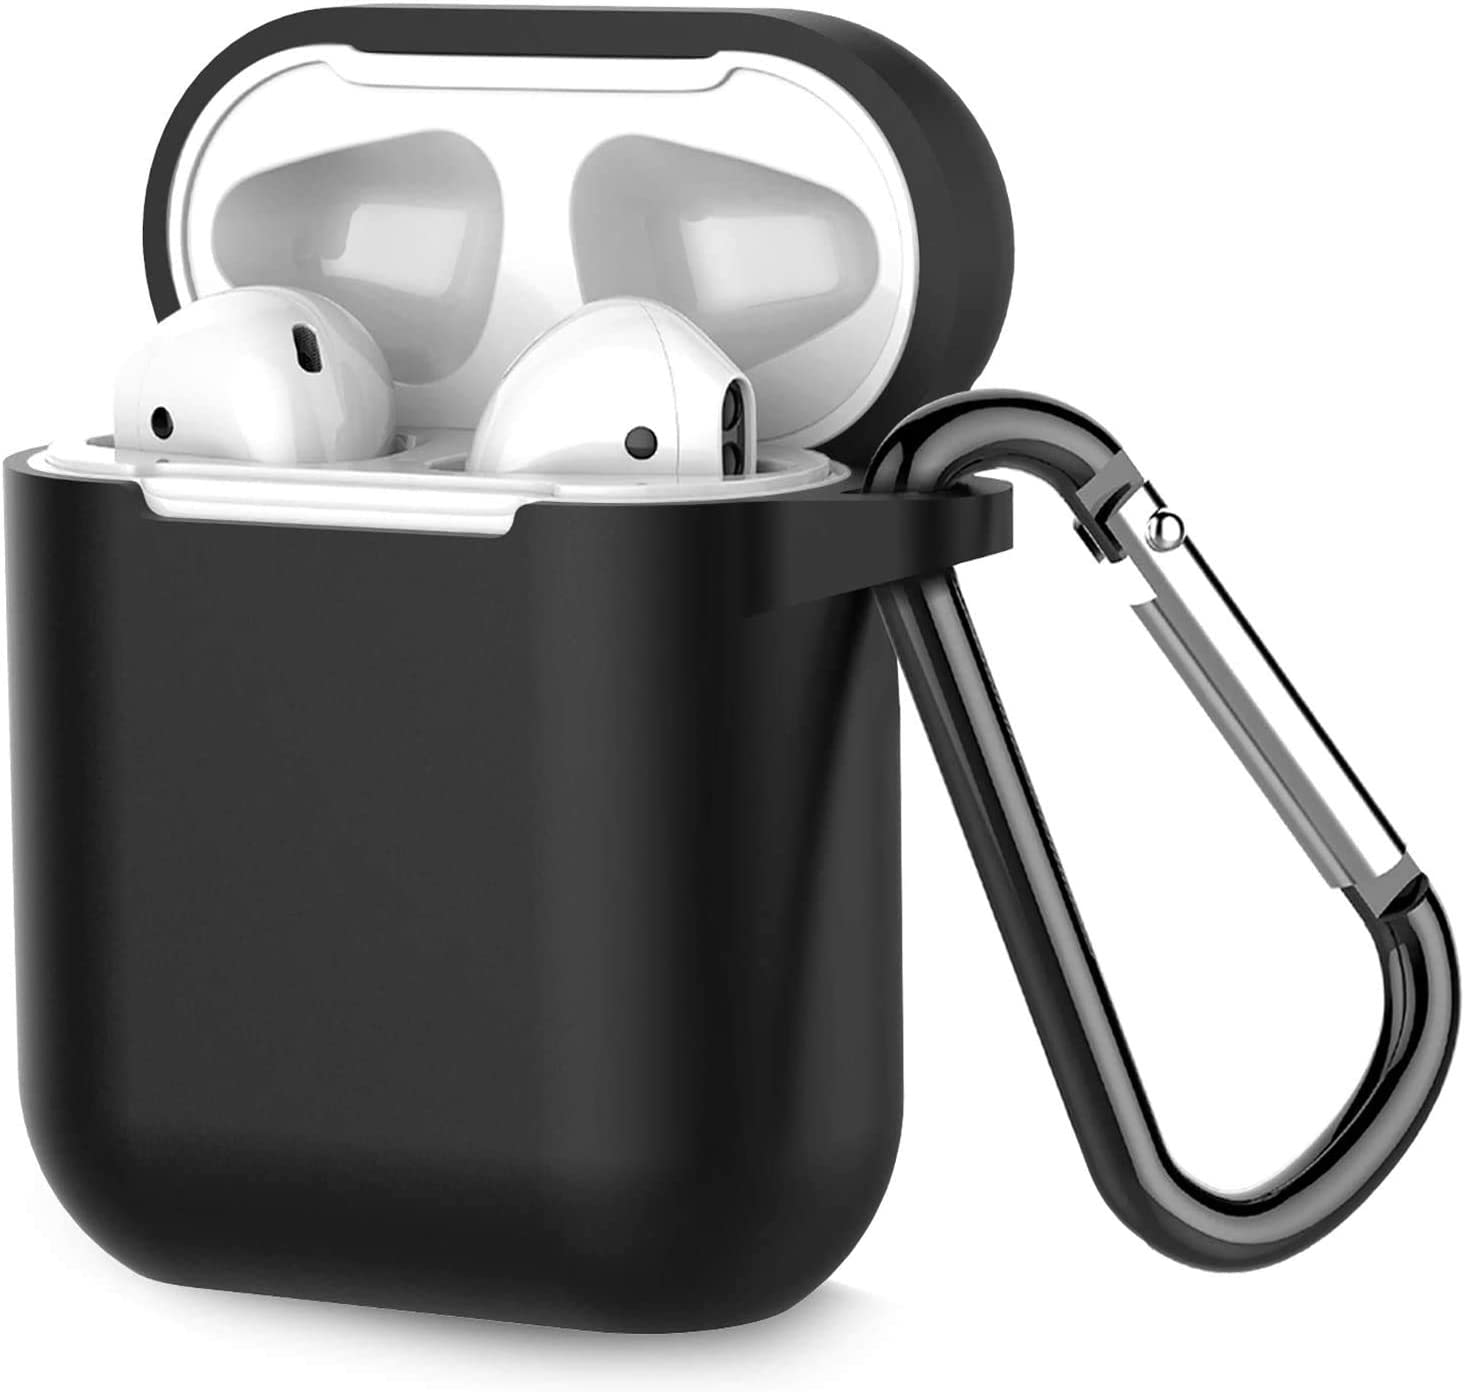 for Airpods Case Cover Silicone, Compatible with Airpod 2 & 1, Full Protective Skin Designed with Keychain, Airpod Wireless Charging Cases for Women Men Boys and Girls